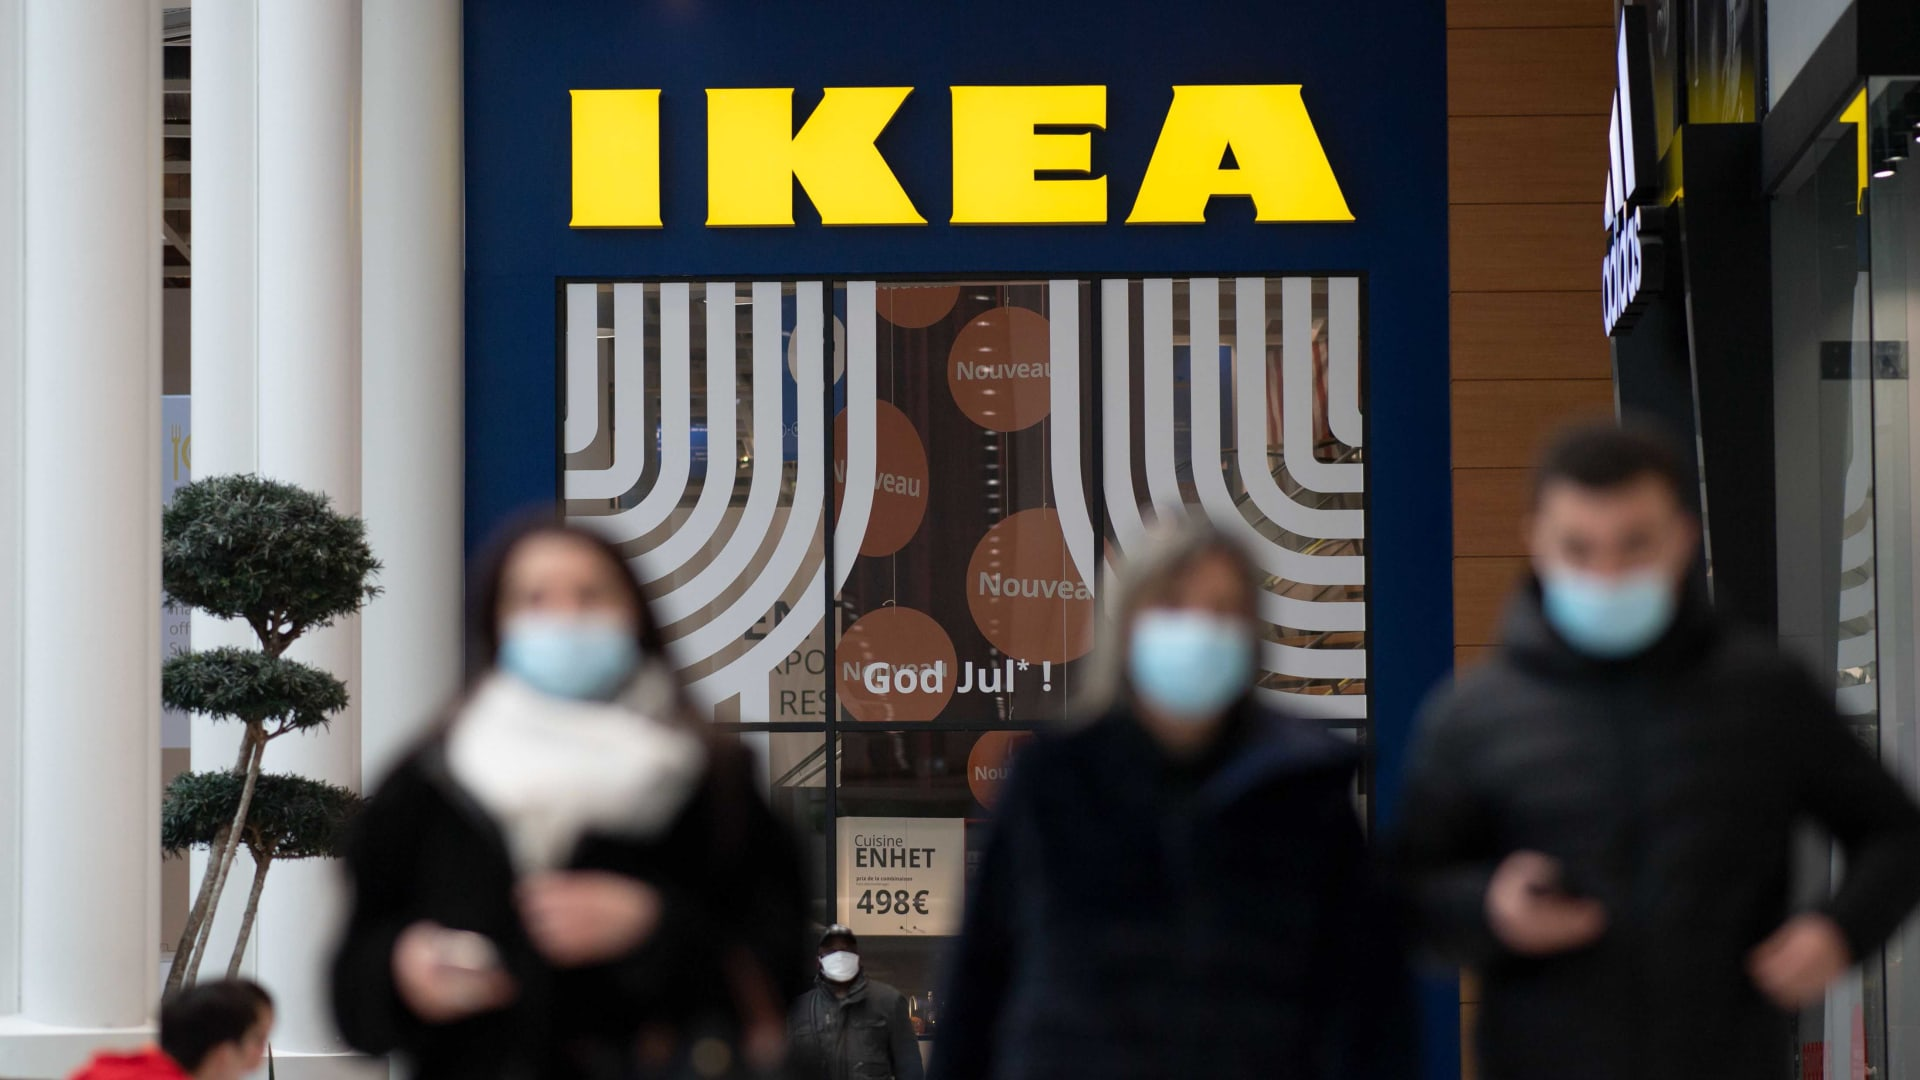 People walk outside the entrance of Scandinavian furniture chain store Ikea on January 13 in Saint-Herblain, outside the city of Nantes in France.